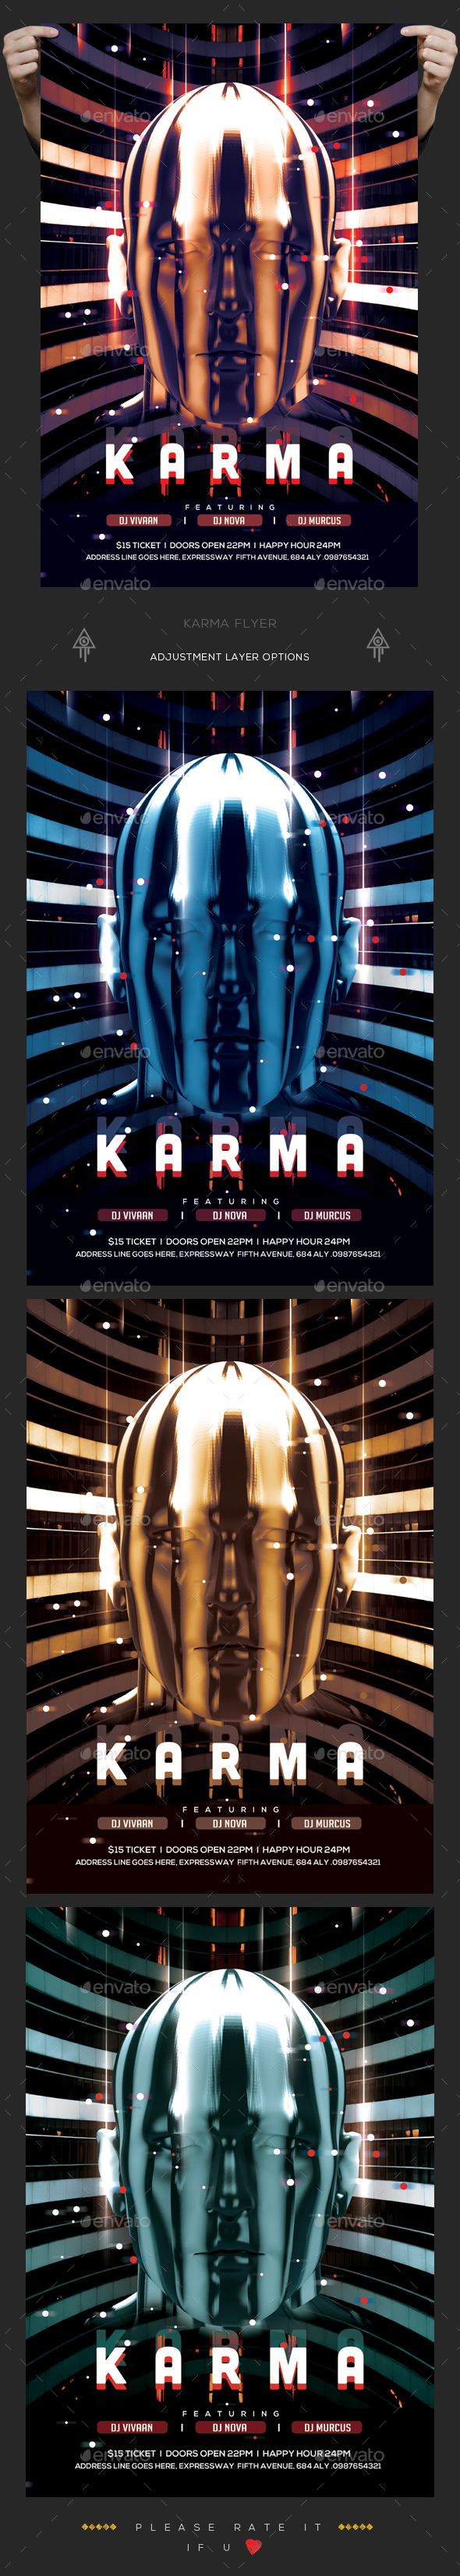 Karma Flyer - Clubs & Parties Events